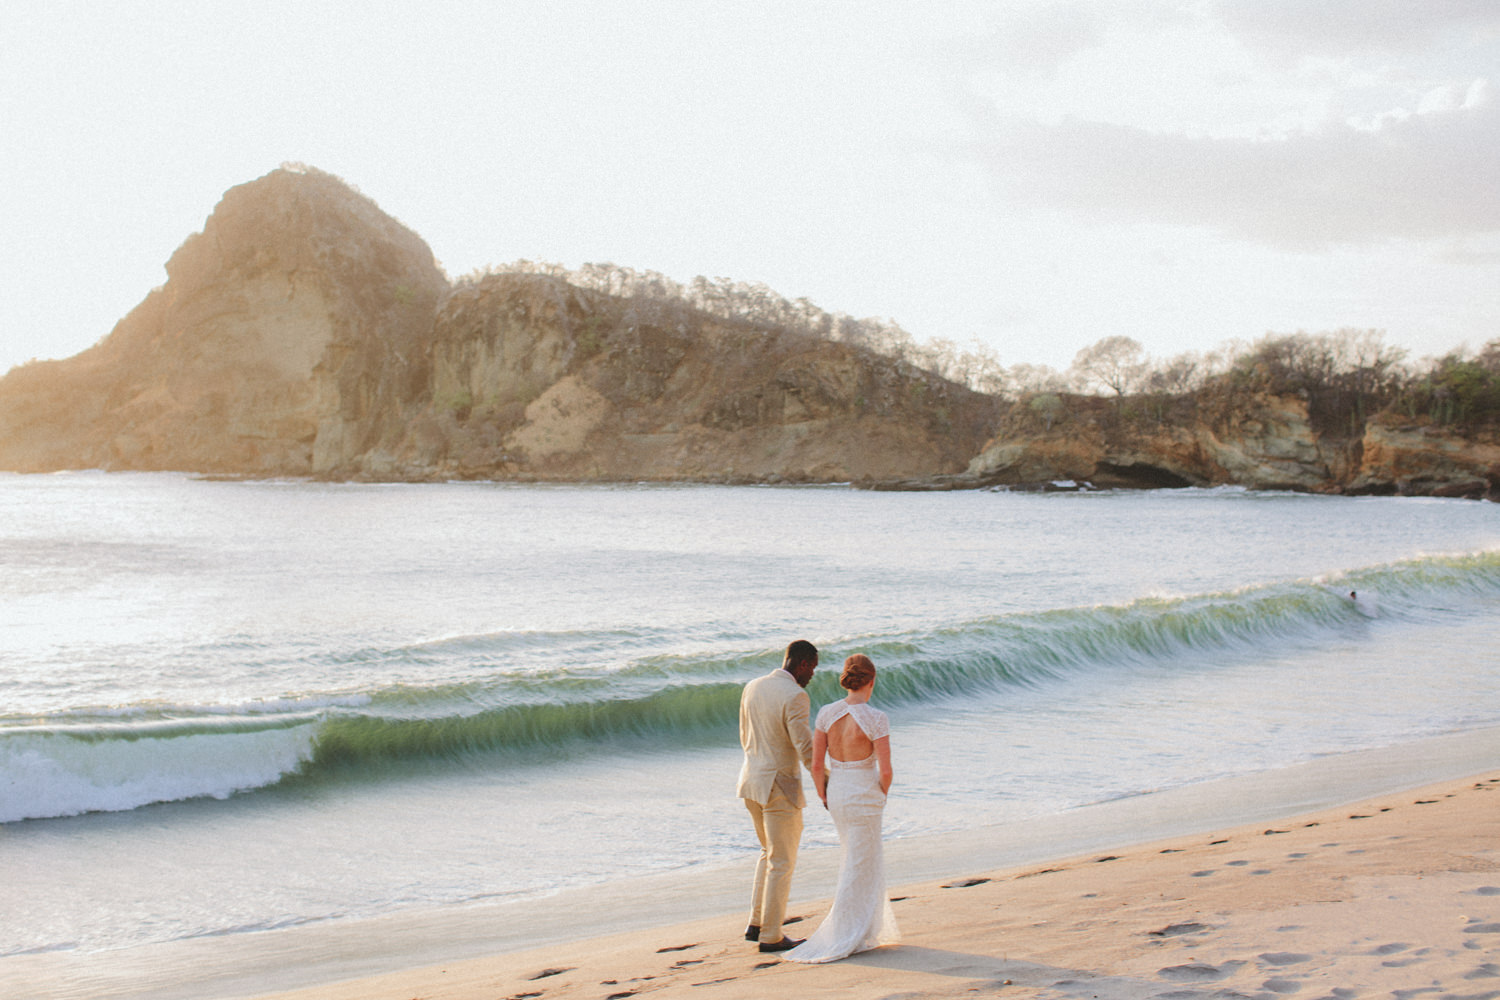 Newly married walking down the beach in Nicaragua. Best wedding photography.